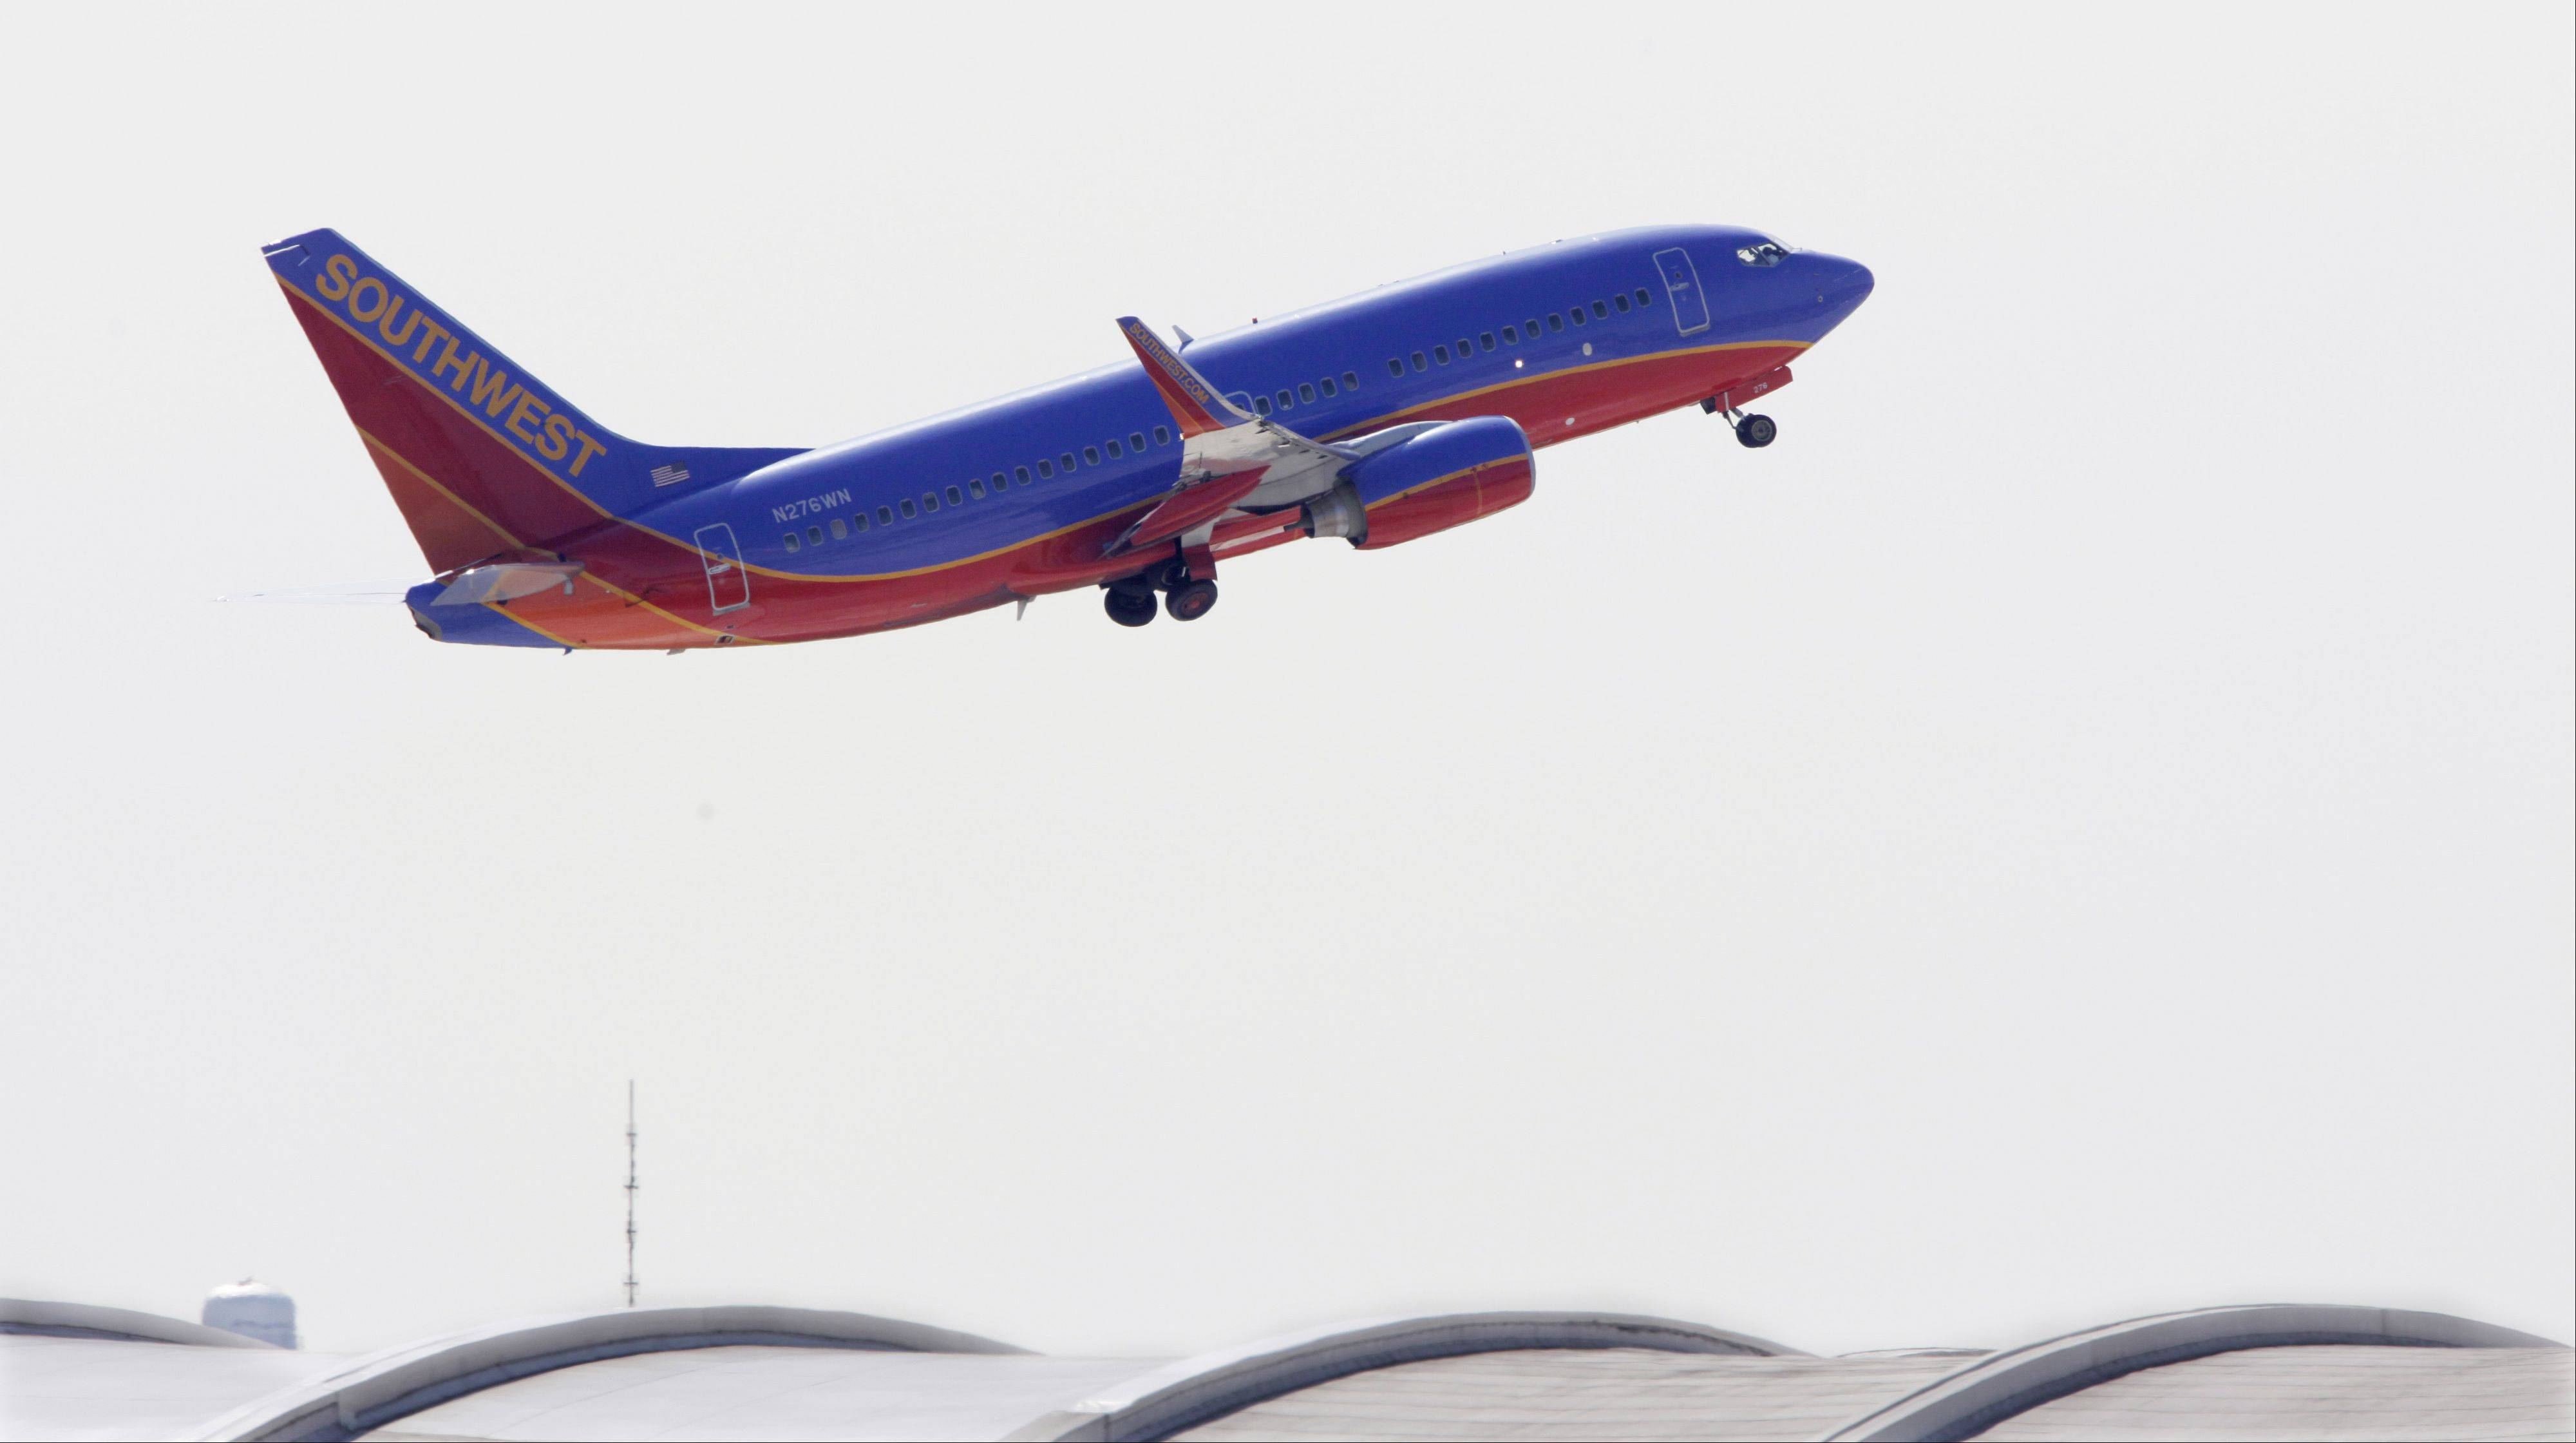 Southwest Airlines plans to sell live television service on five planes and expand it to more aircraft by mid-July. The airline said that it would offer seven sports and news channels for passengers to watch on their own devices. Southwest said it will test prices from $3 to $8 during a trial period. Passengers will need a Wi-Fi-enabled device such as a smartphone, tablet or laptop computer.